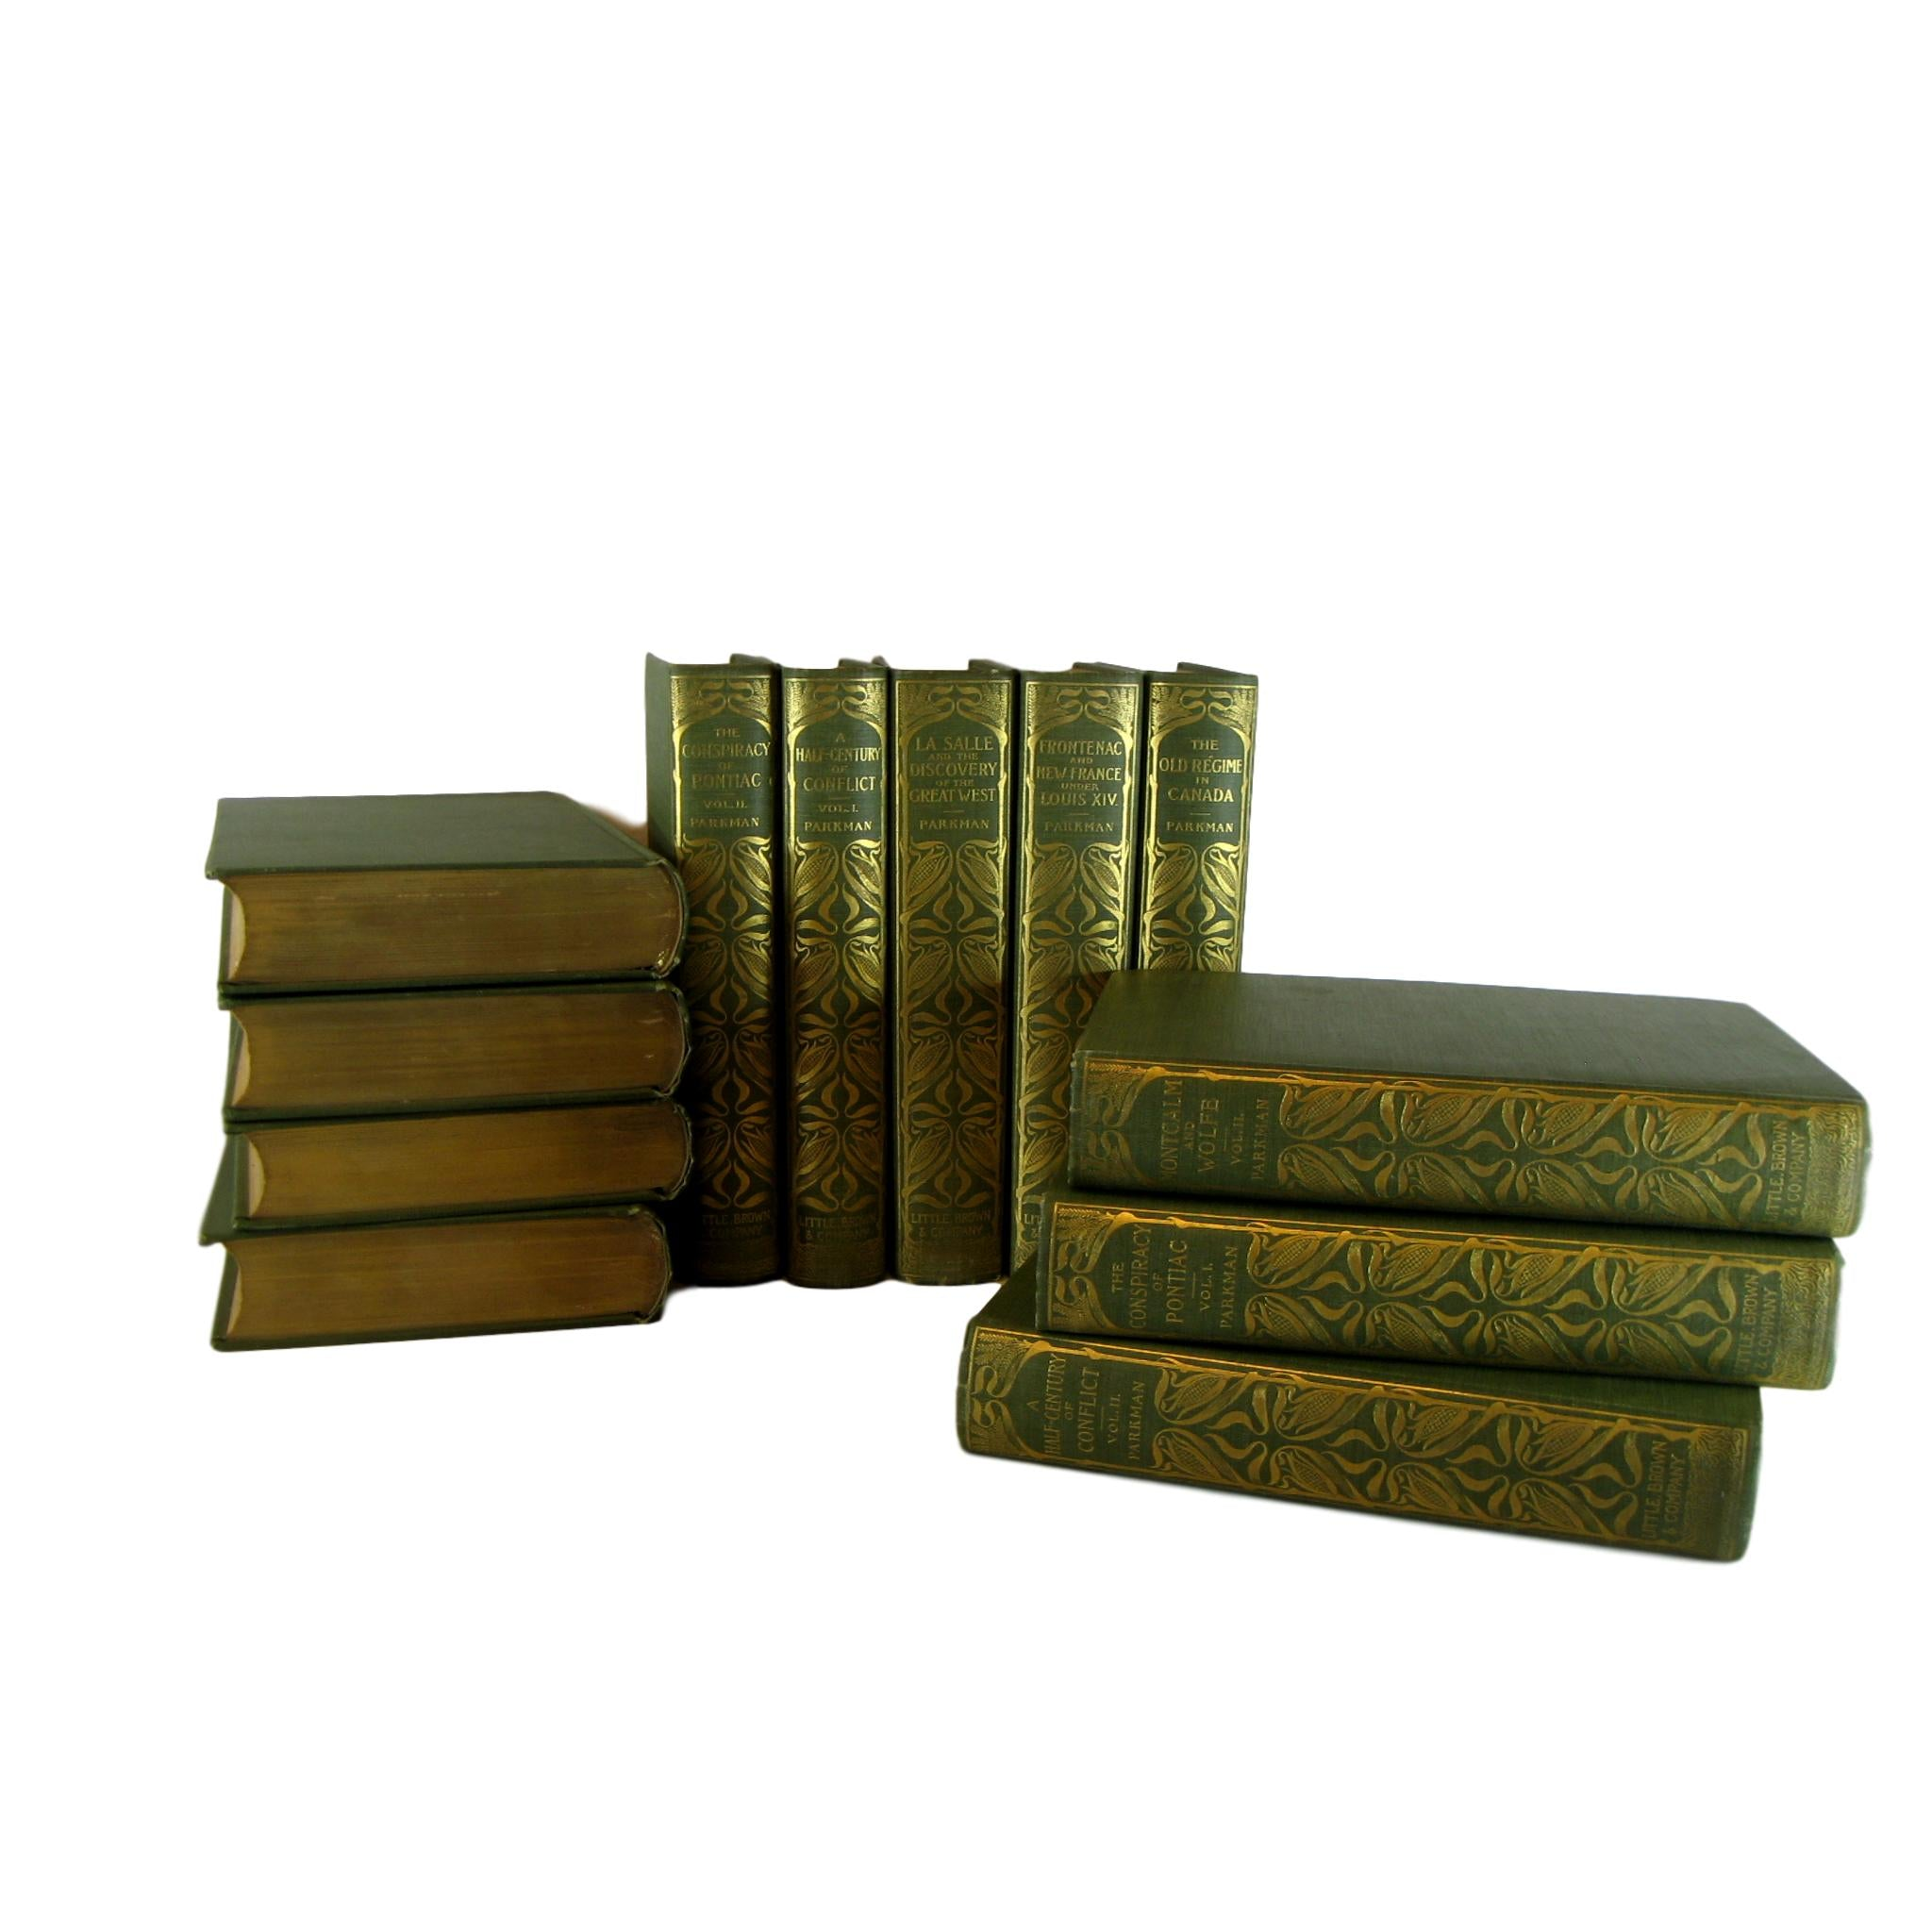 Antique Green Decorative Book Set from 1897, S/12 - Decades of Vintage